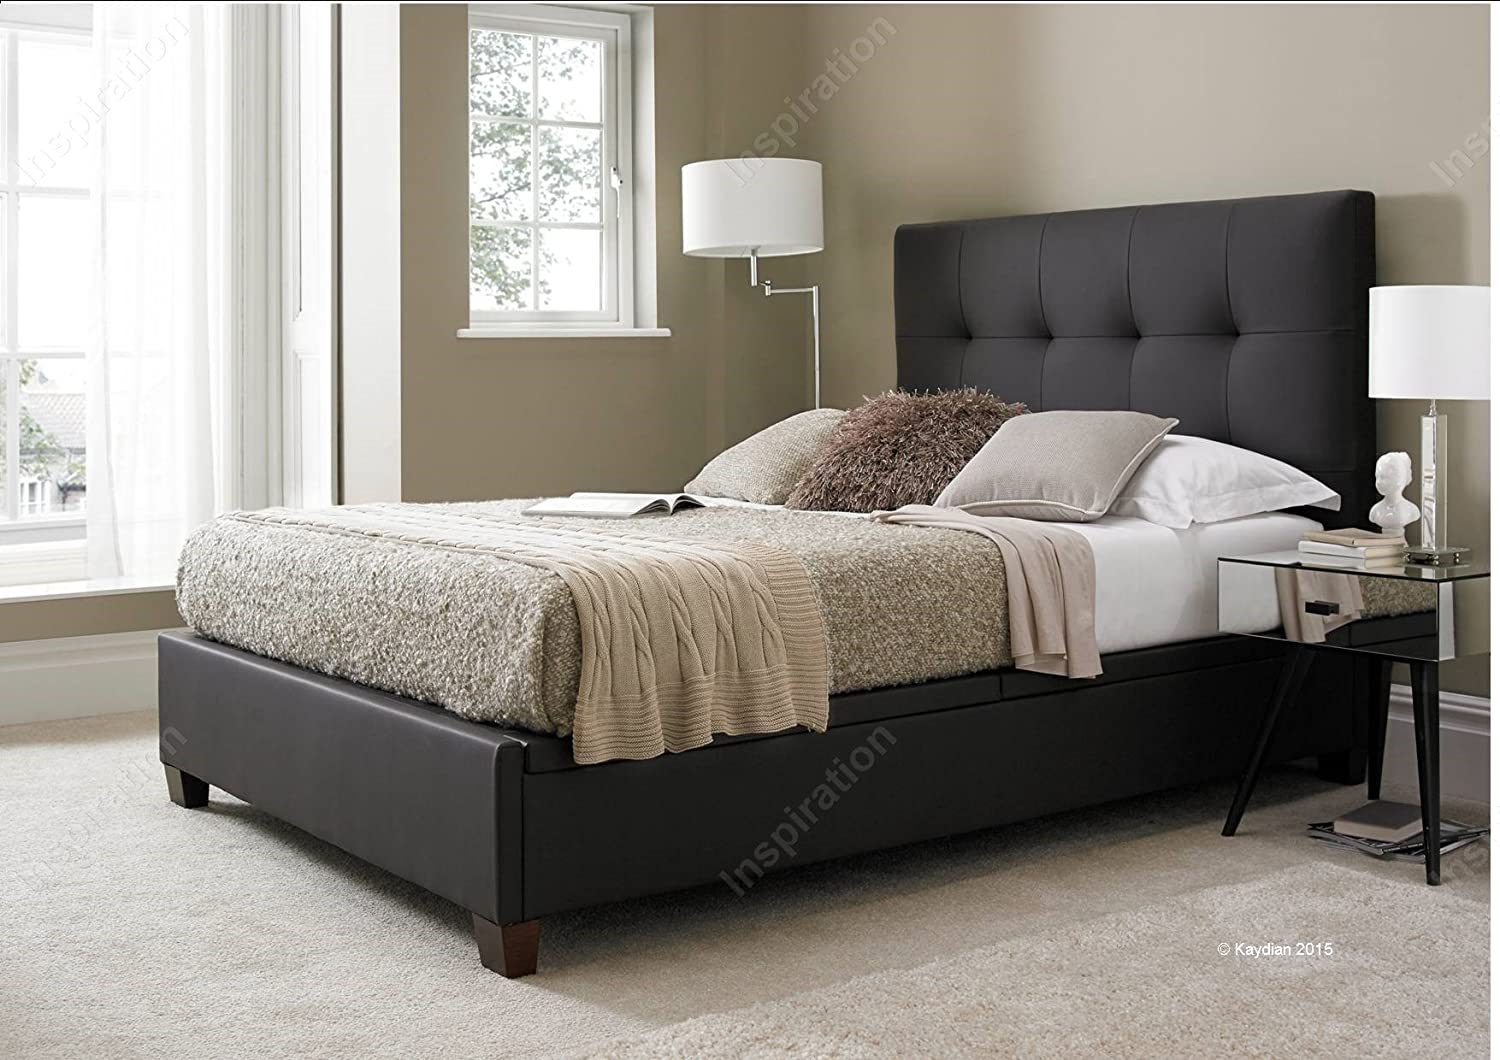 Inspiration Beds Kaydian Walkworth 5 ft (150 cm x 200 cm) King Size ...